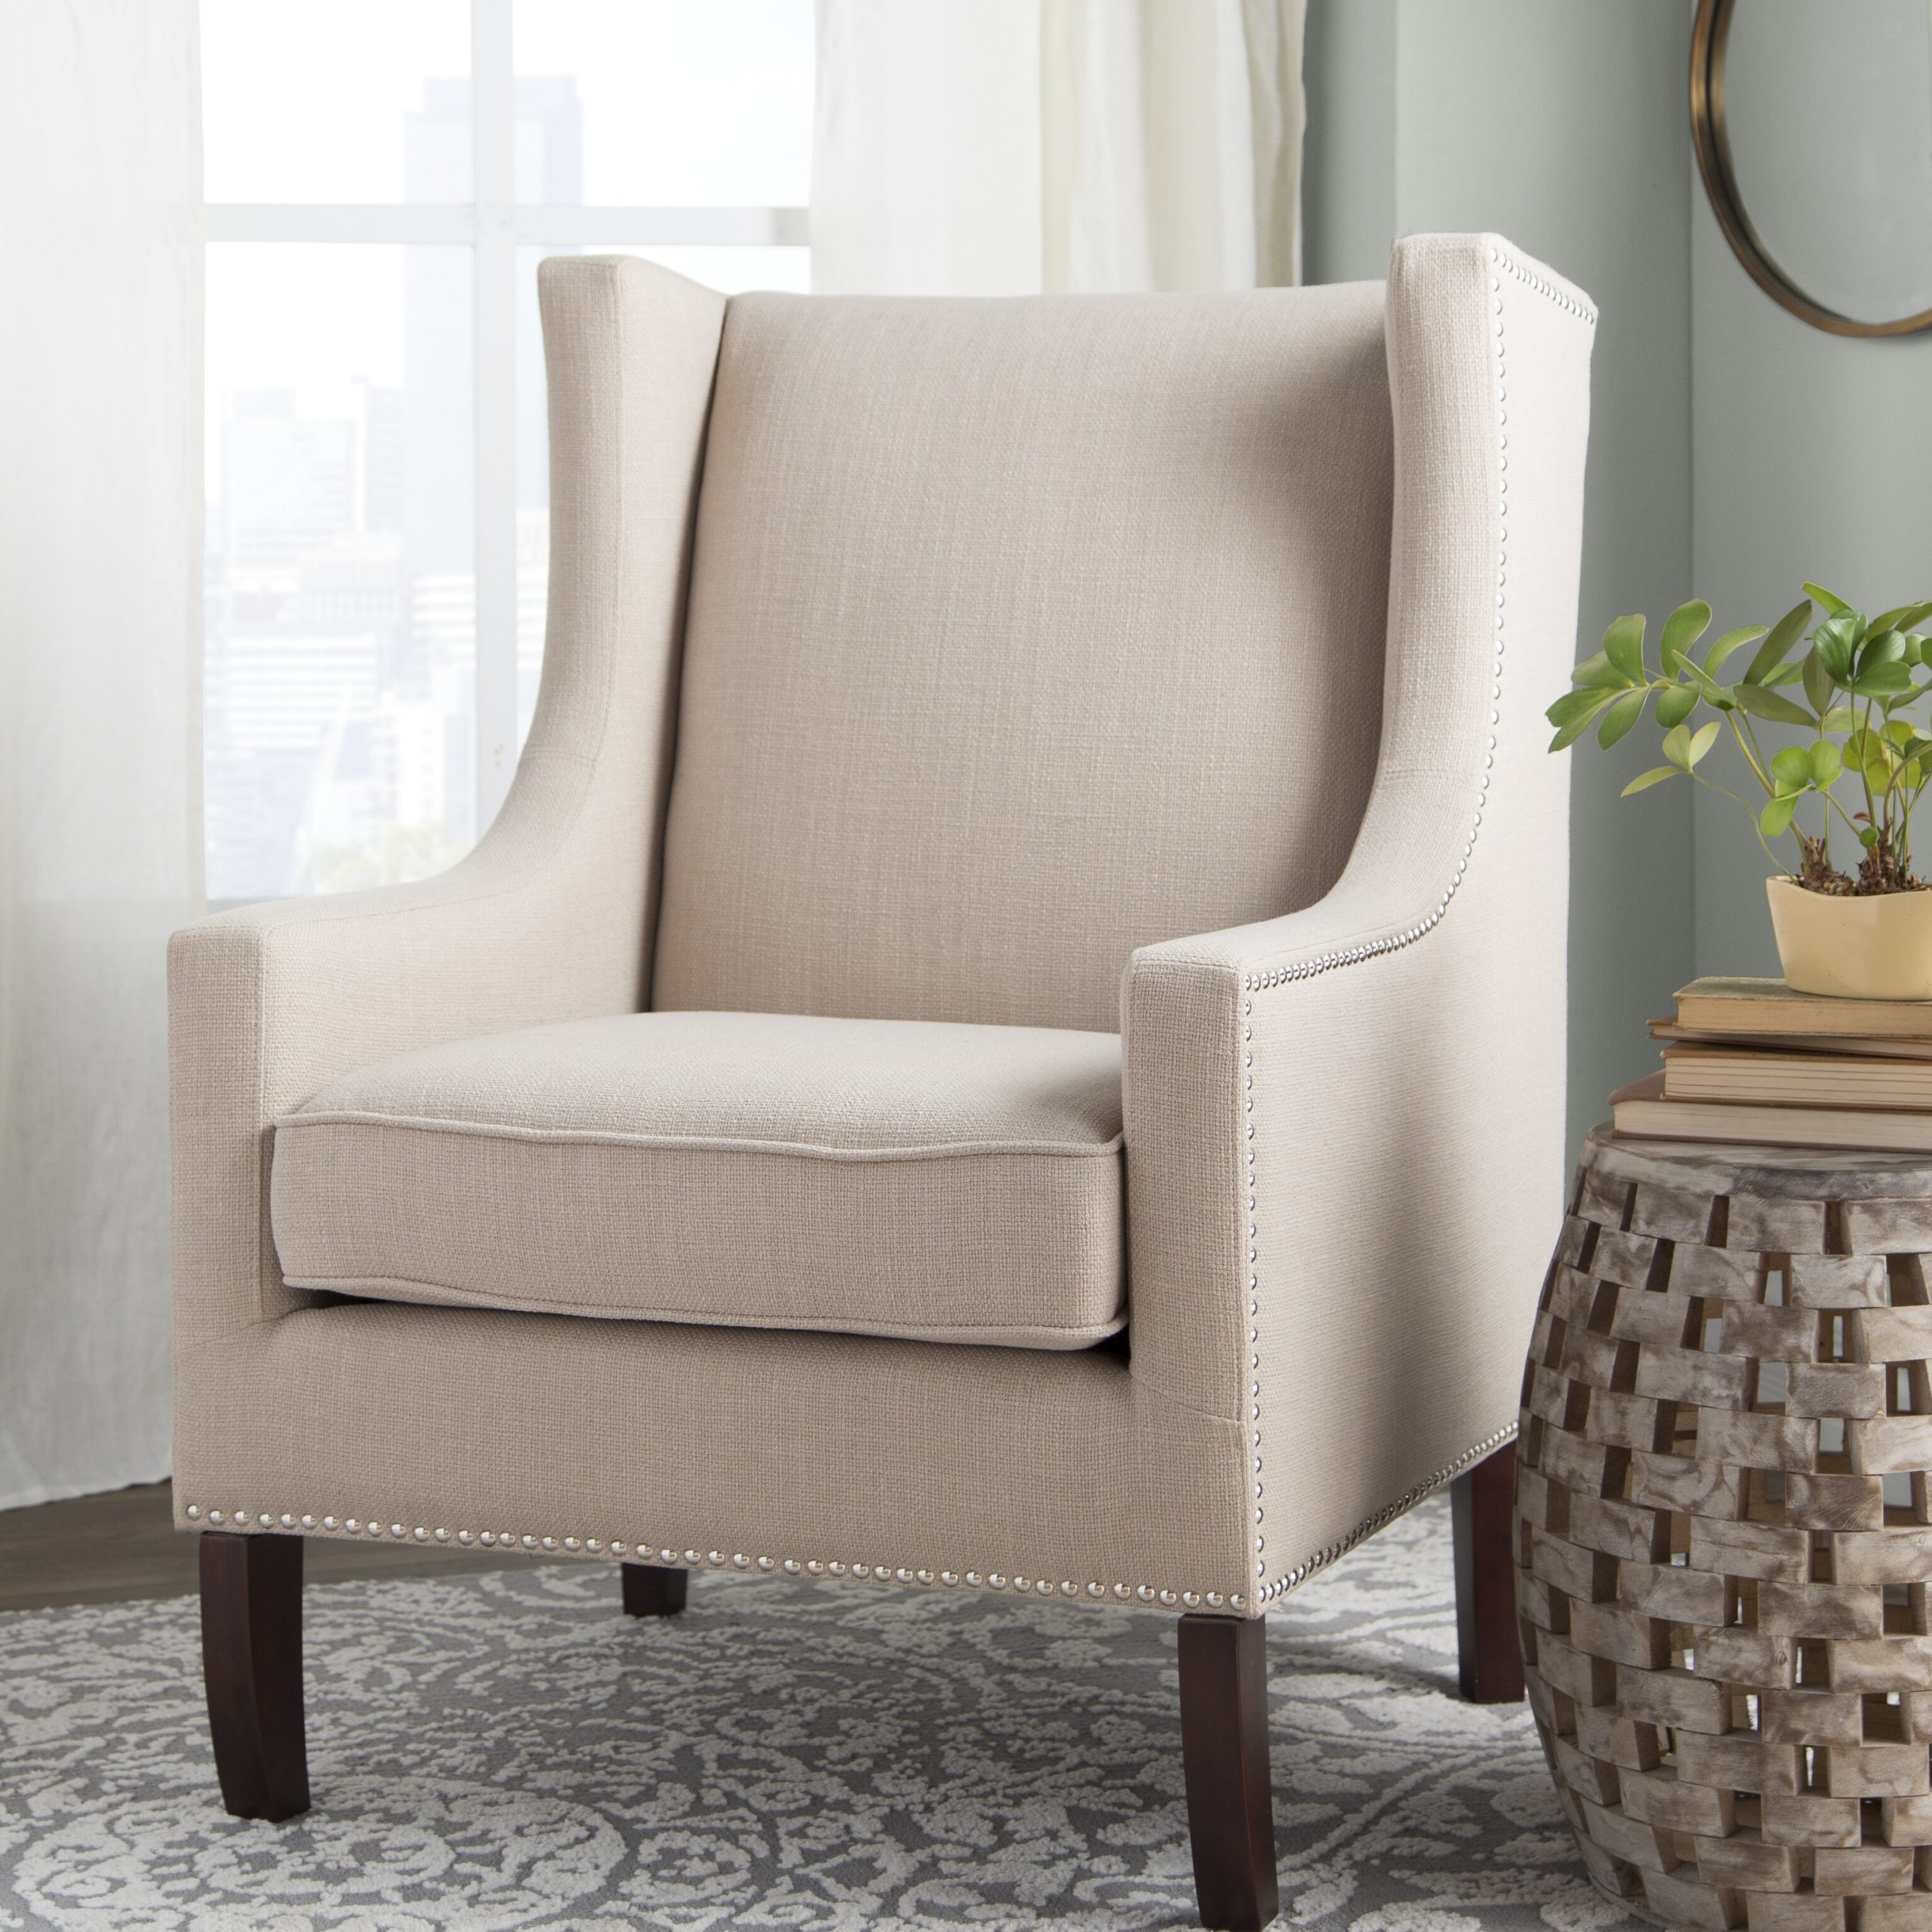 Wingback Accent Chairs You'Ll Love In 2021 | Wayfair Intended For Lenaghan Wingback Chairs (View 6 of 15)